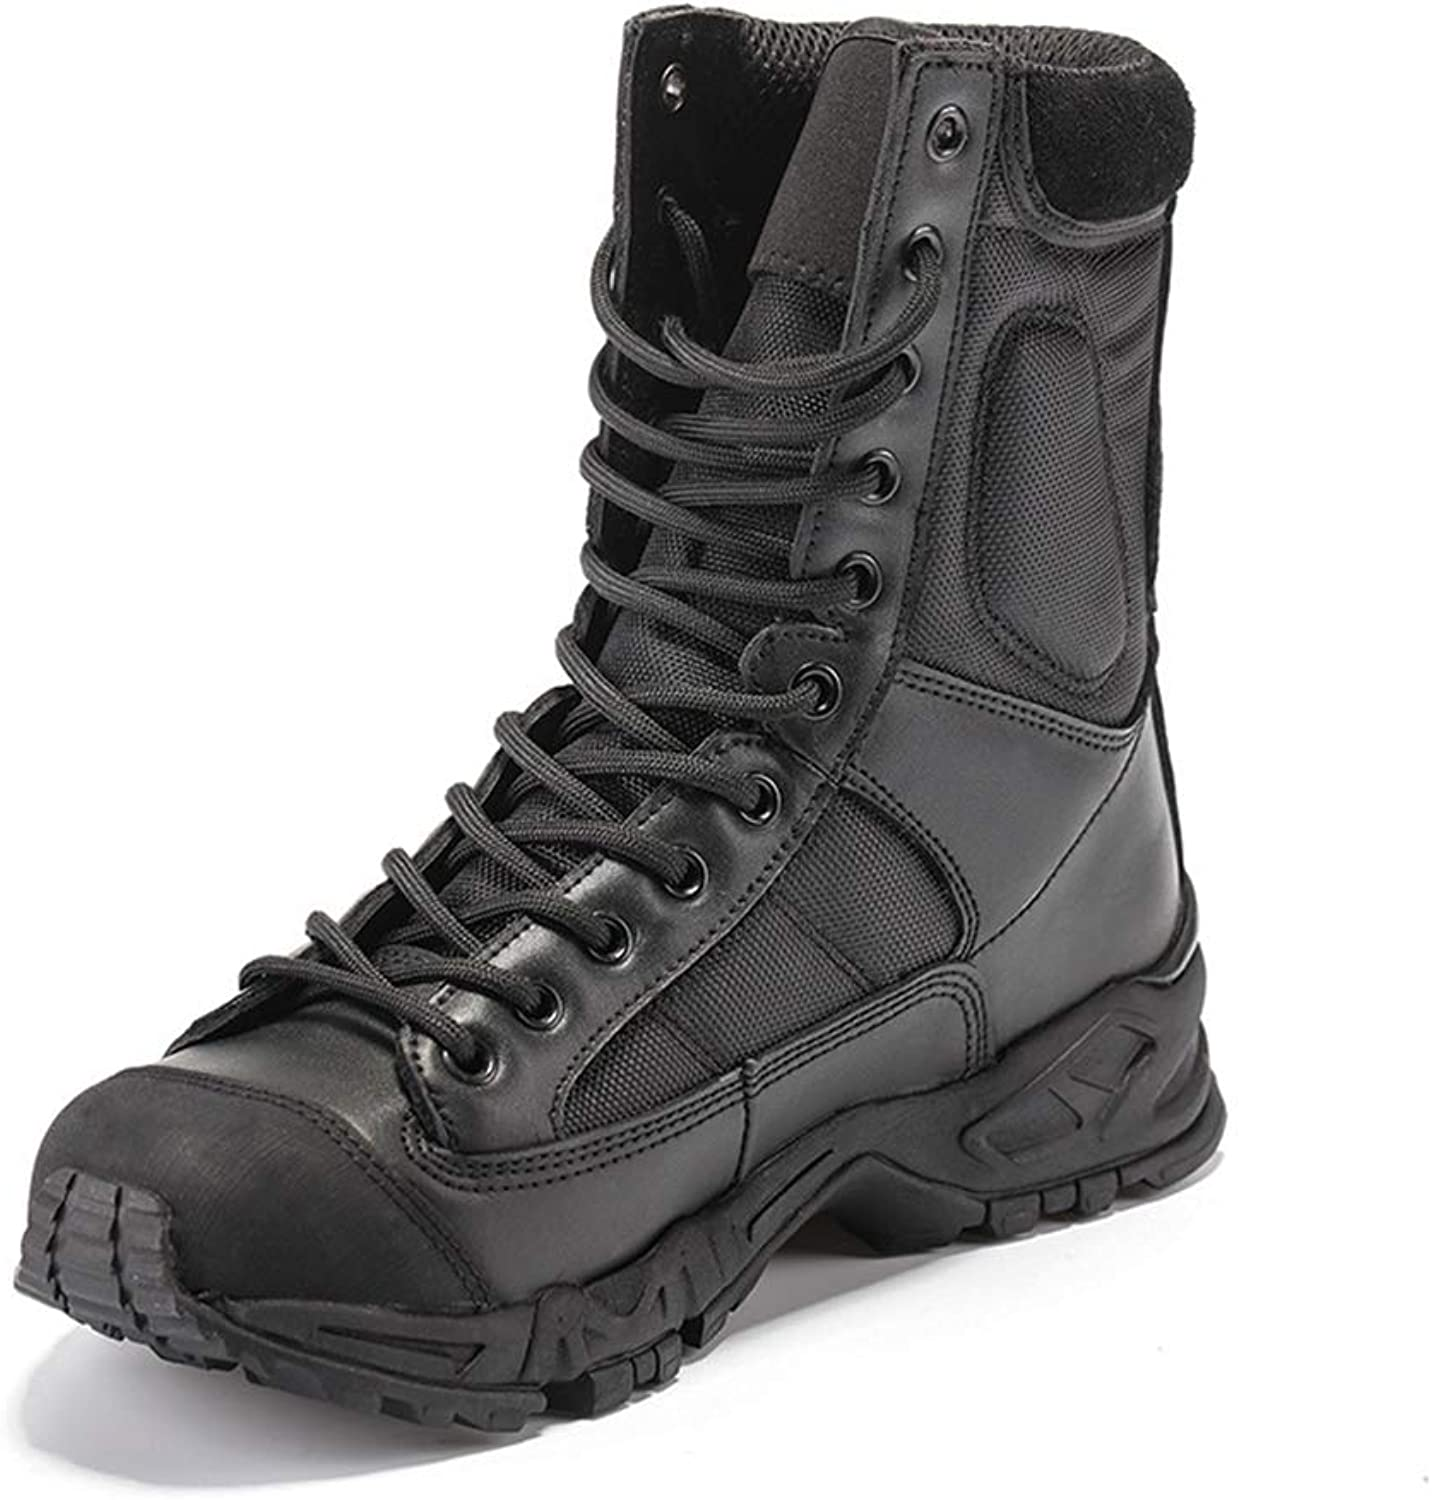 HEMAY Unisex Combat Boots High Top Hunting Military shoes Black